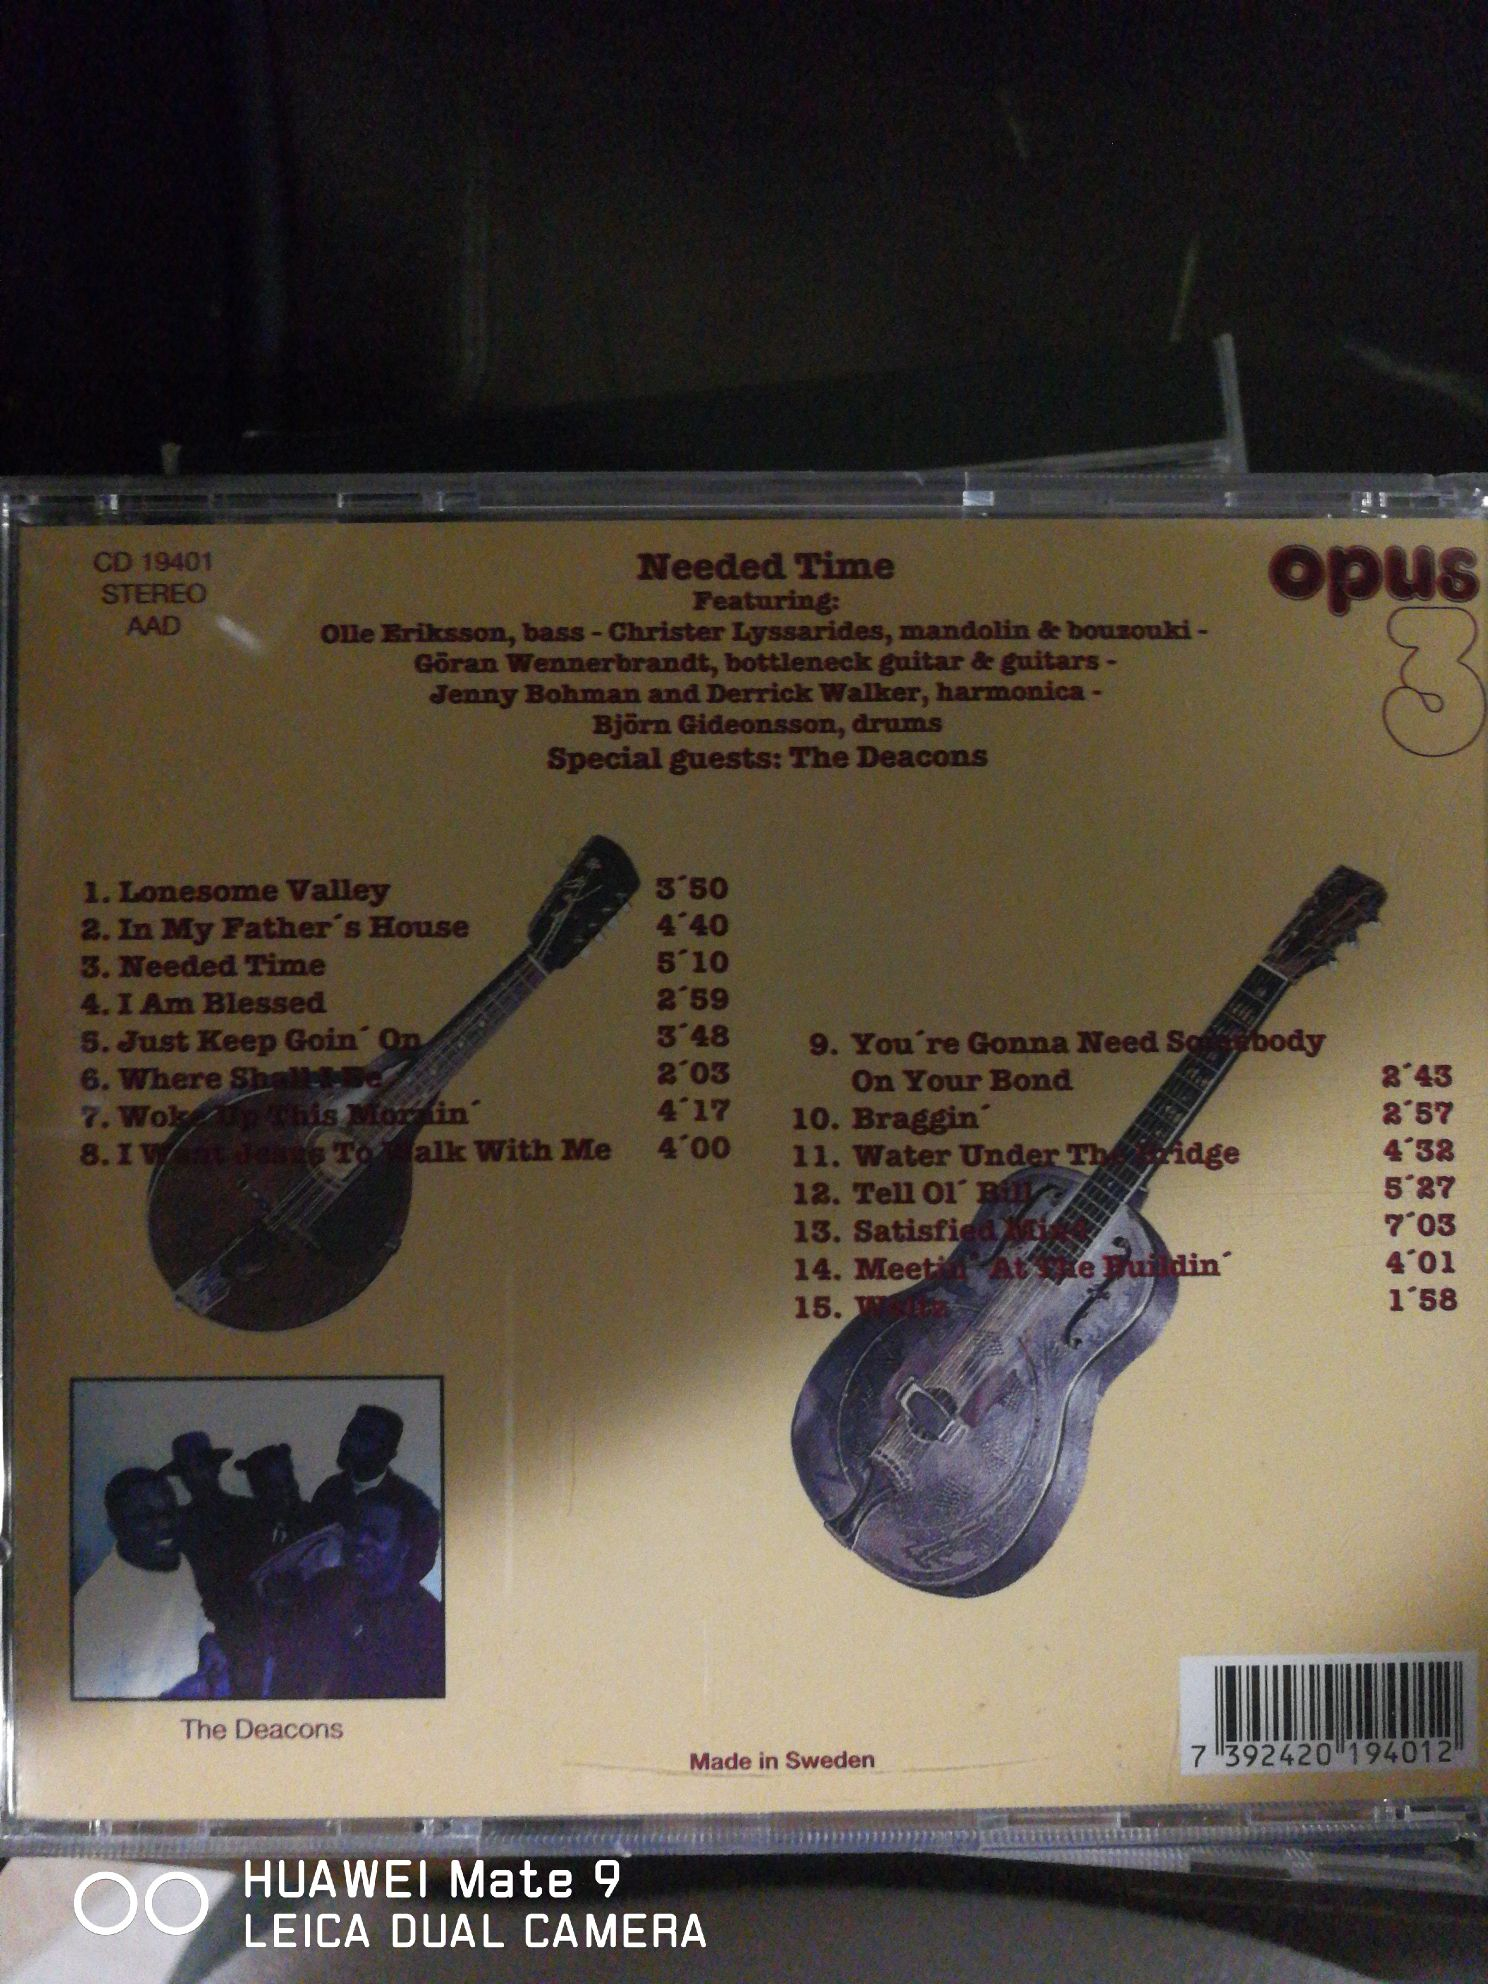 Spirit & And The Blues Music - Bibb, Eric (CD) back image (back cover, second image)